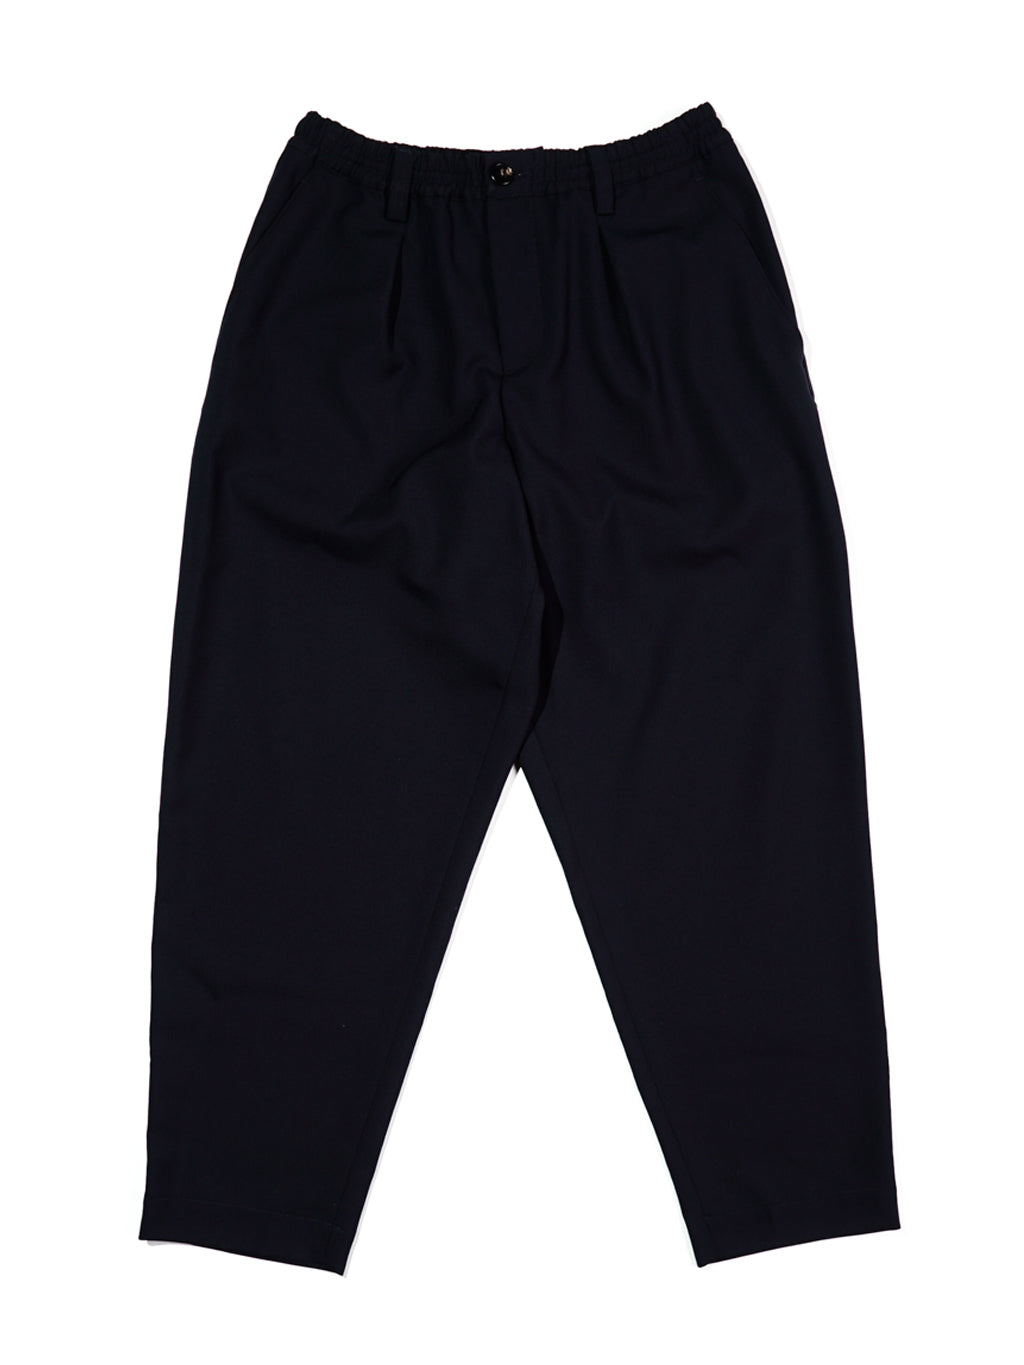 Black Tropical Wool Trousers